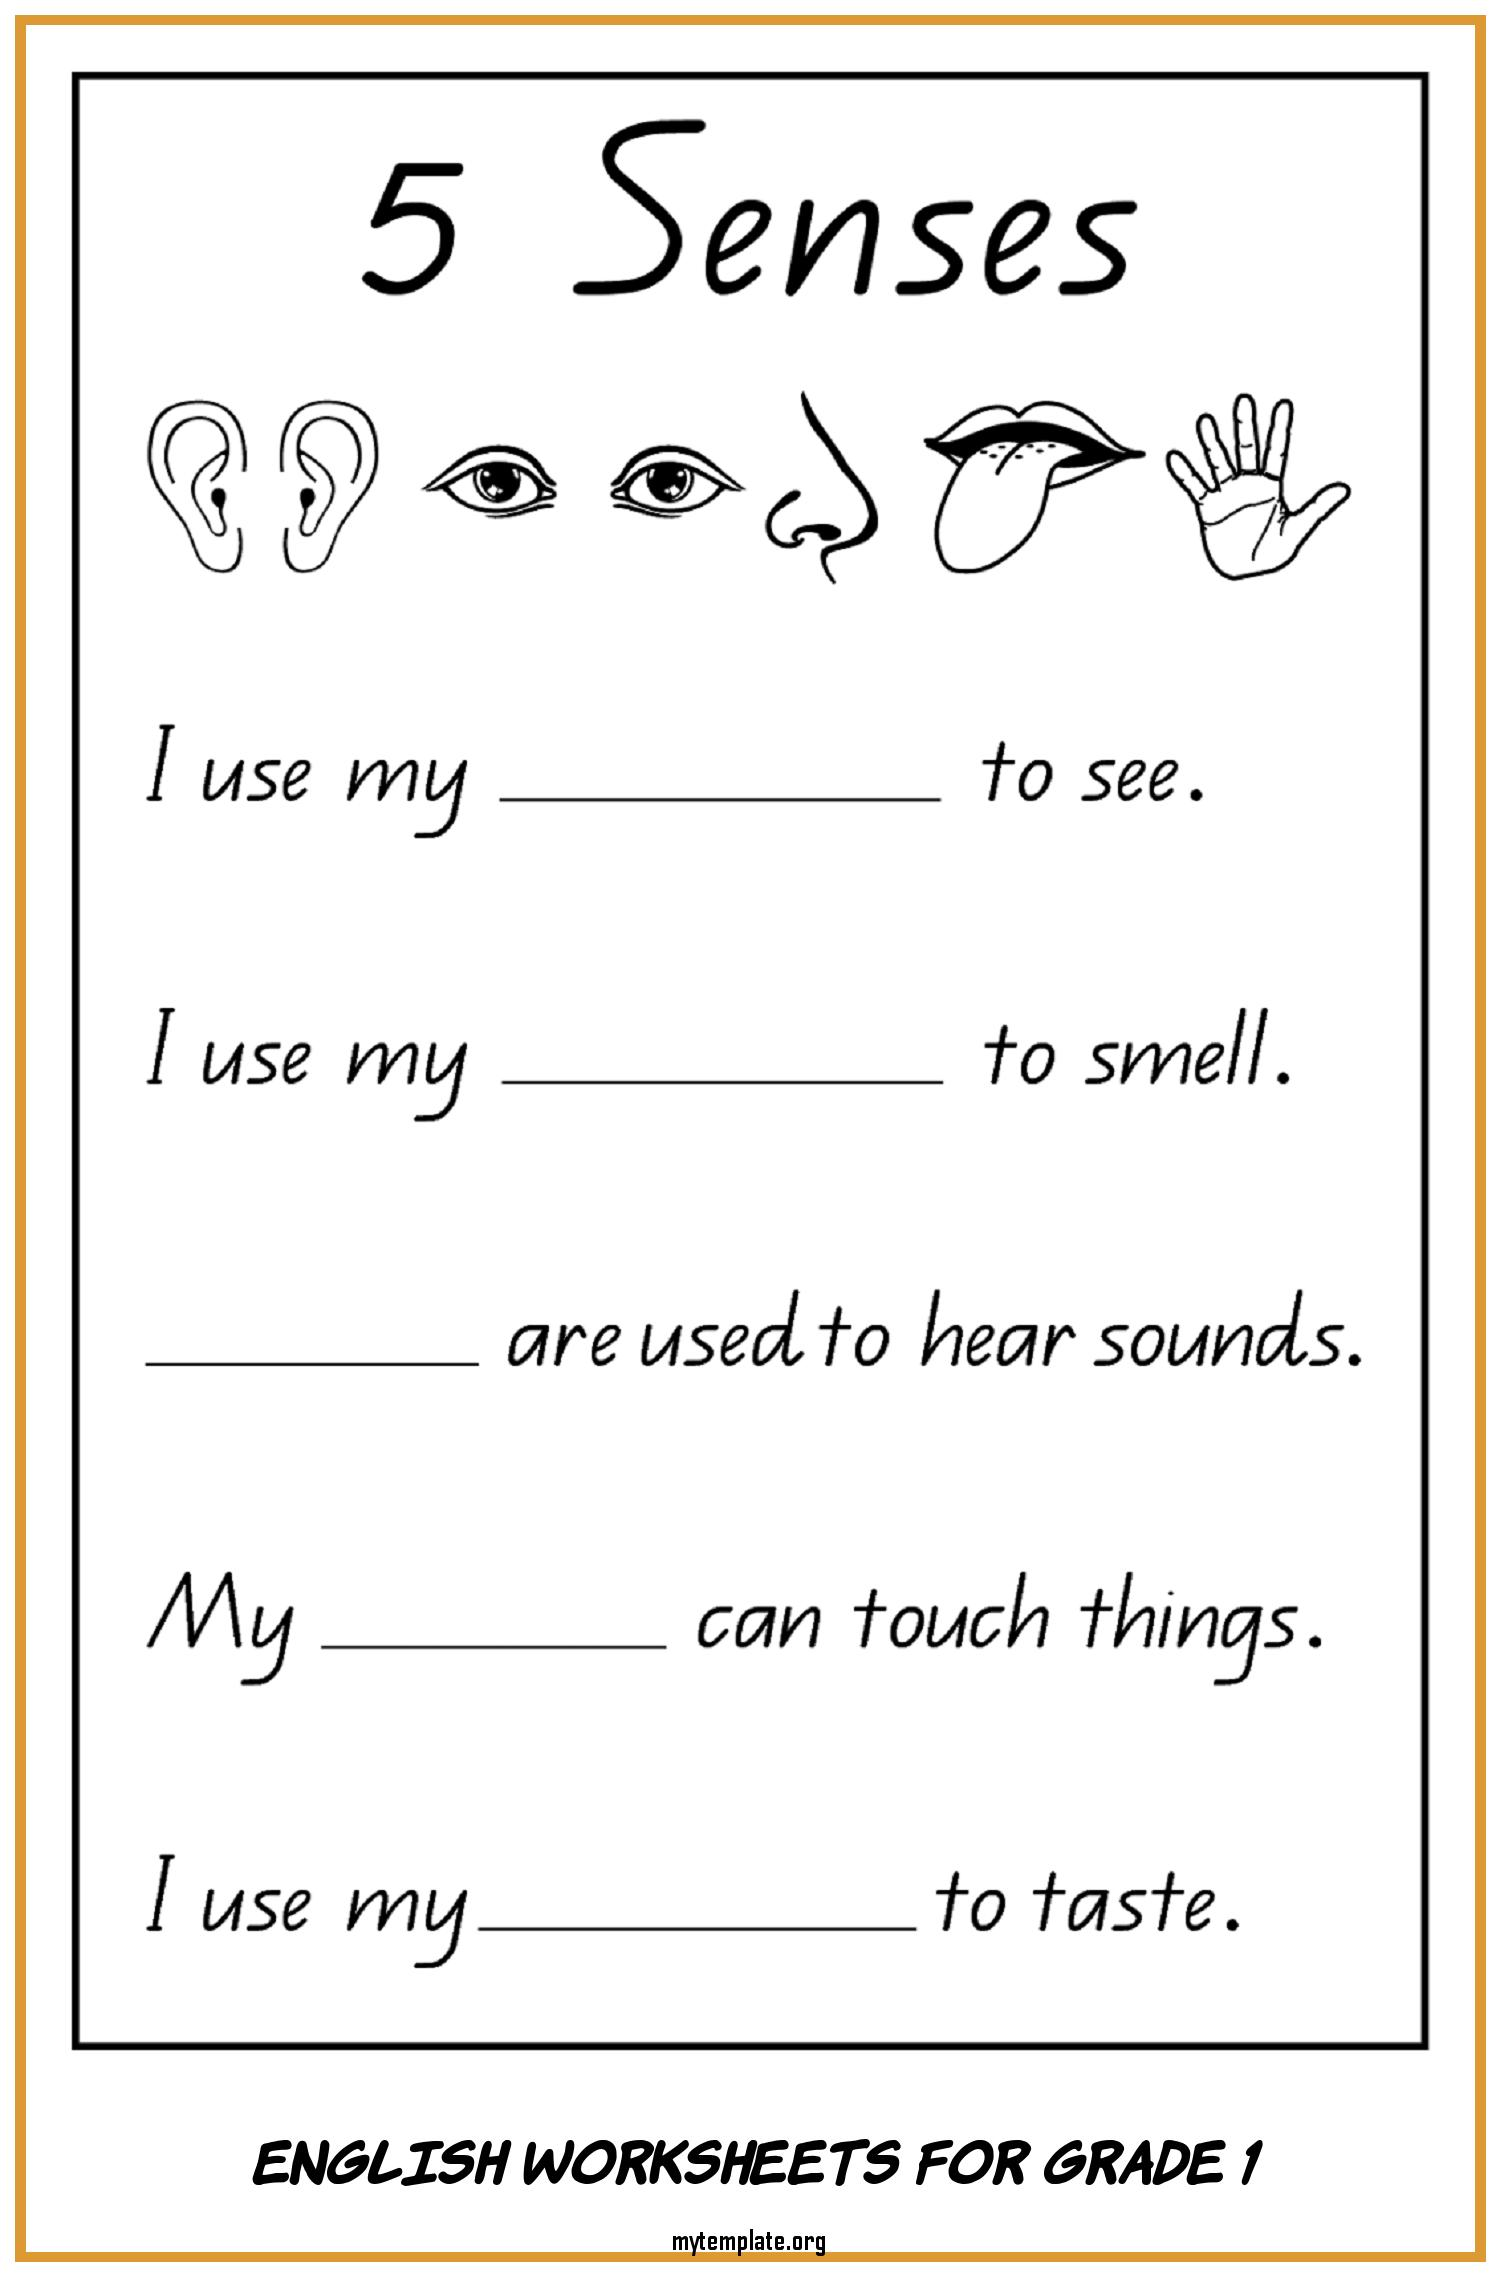 7 English Worksheets for Grade 1 - Free Templates [ 2122 x 1399 Pixel ]